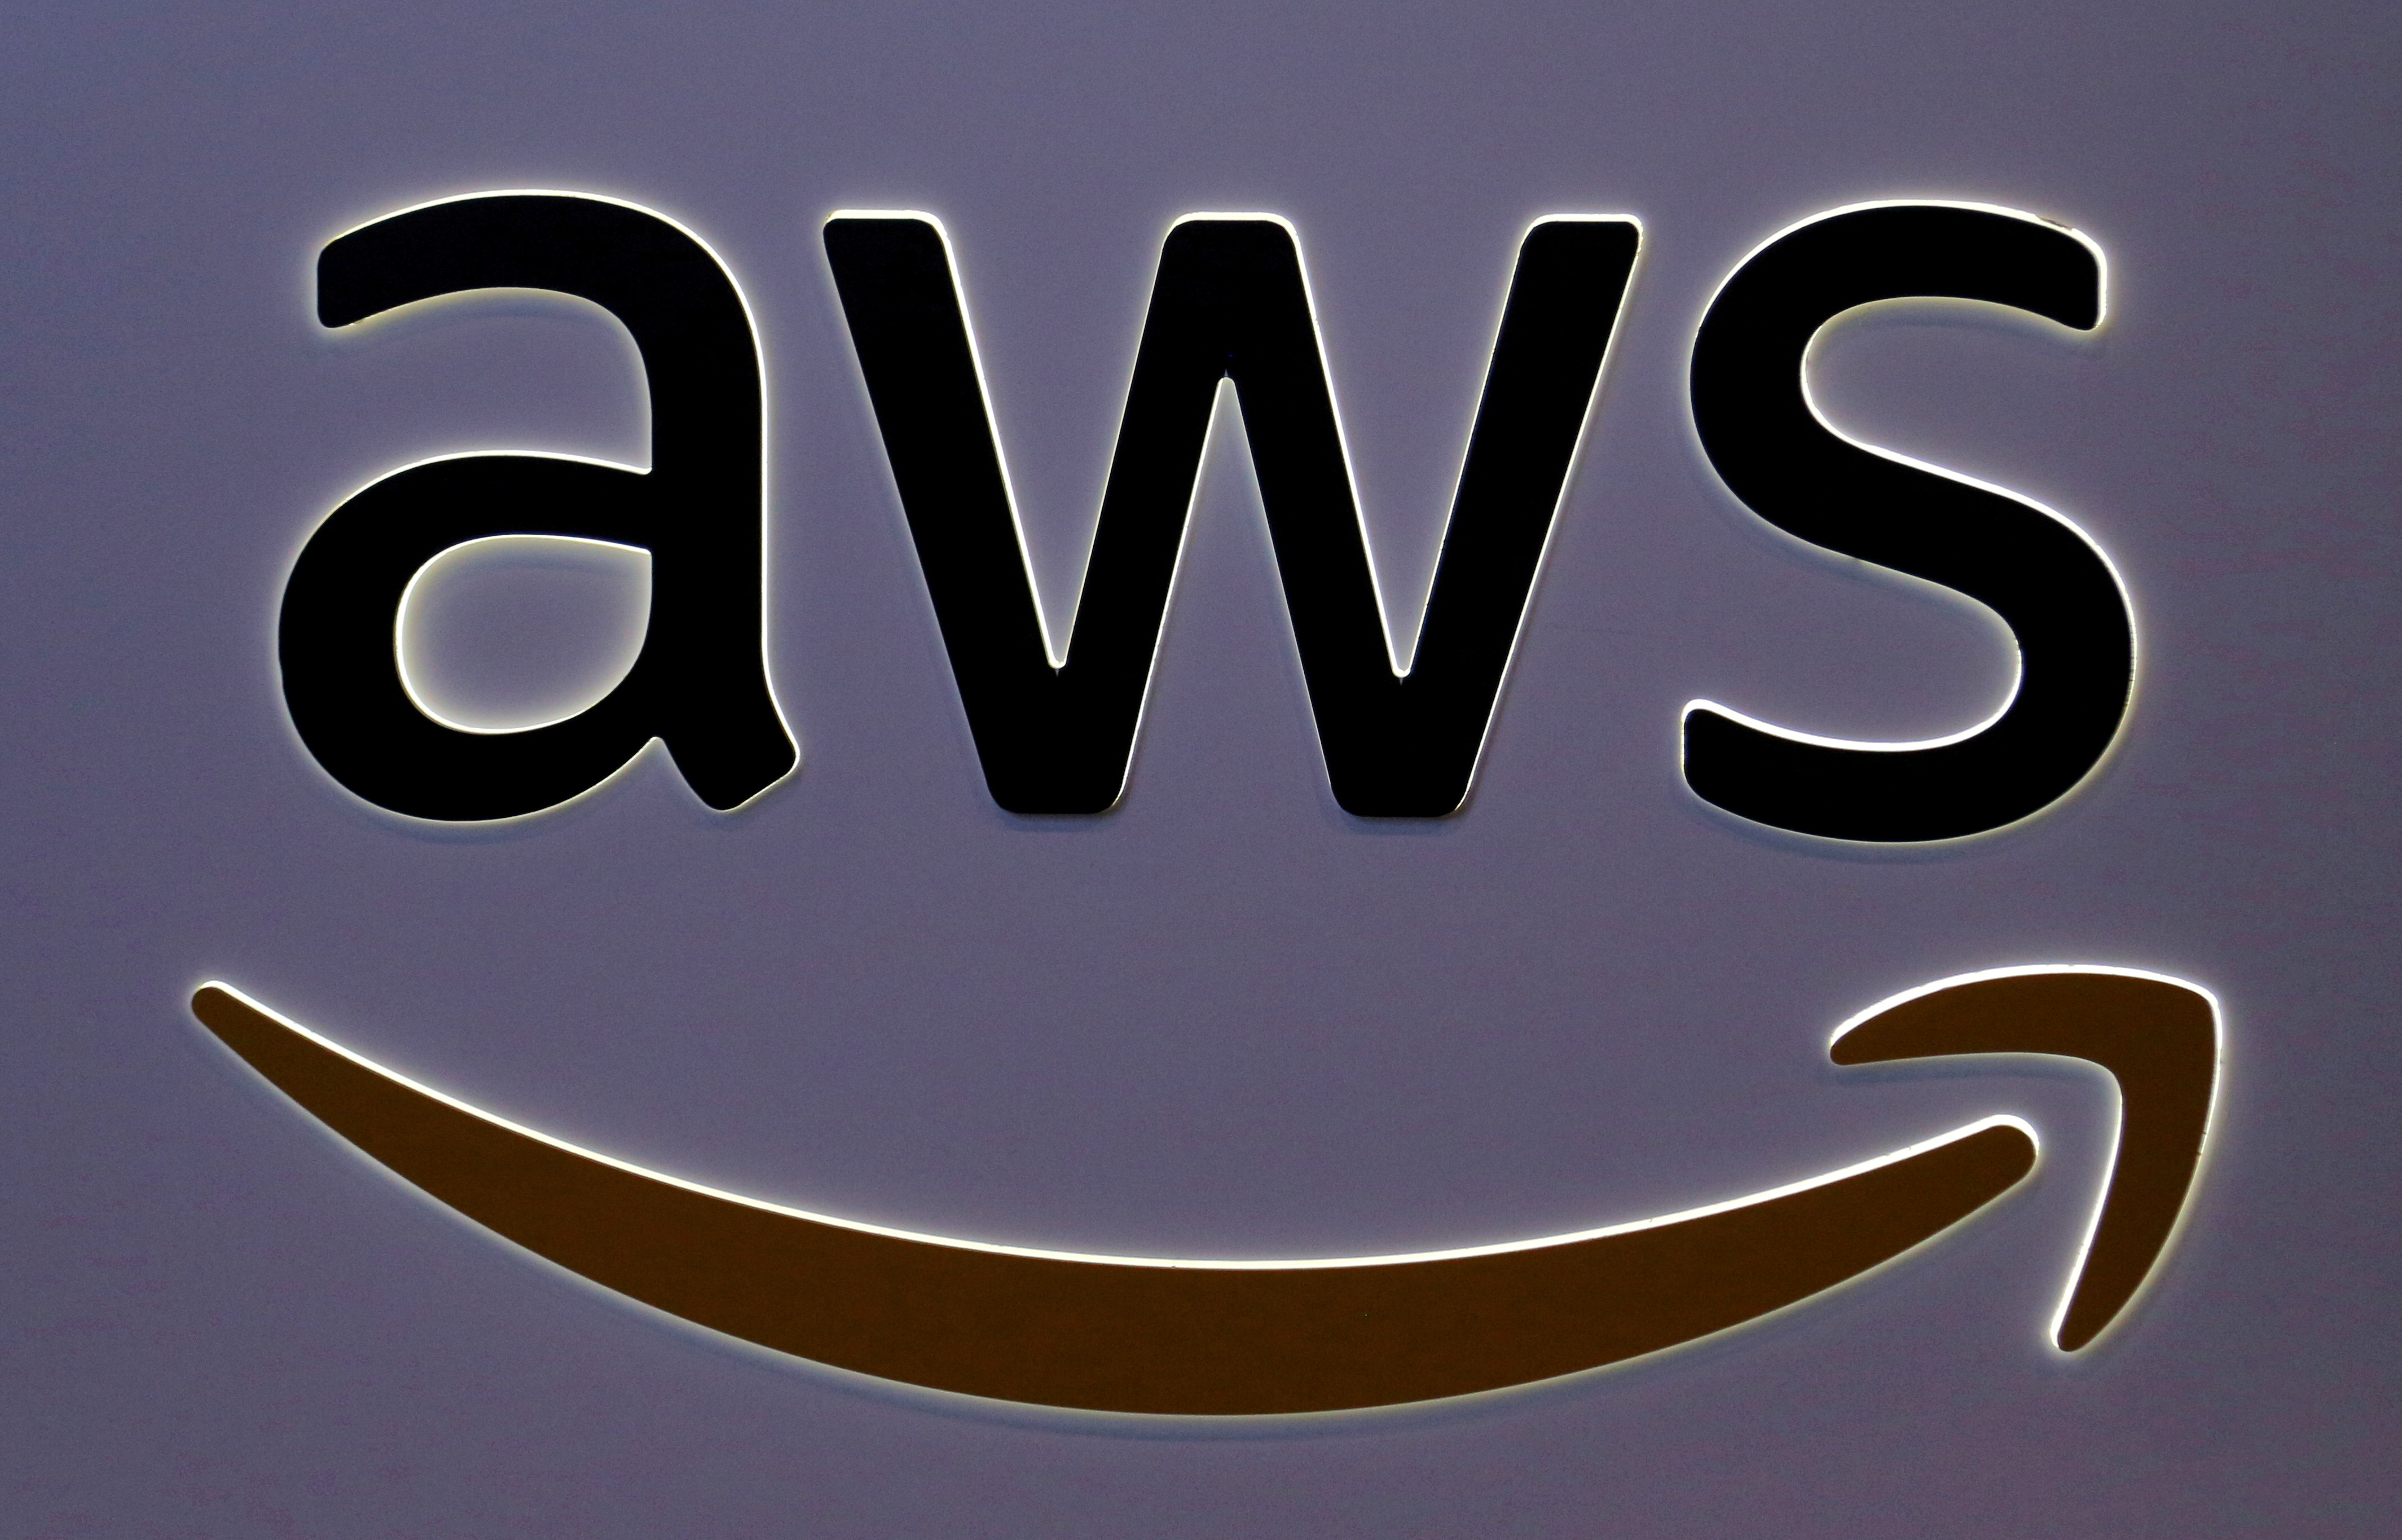 The logo for Amazon Web Services (AWS) is seen at the SIBOS banking and financial conference in Toronto, Ontario, Canada October 19, 2017. REUTERS/Chris Helgren